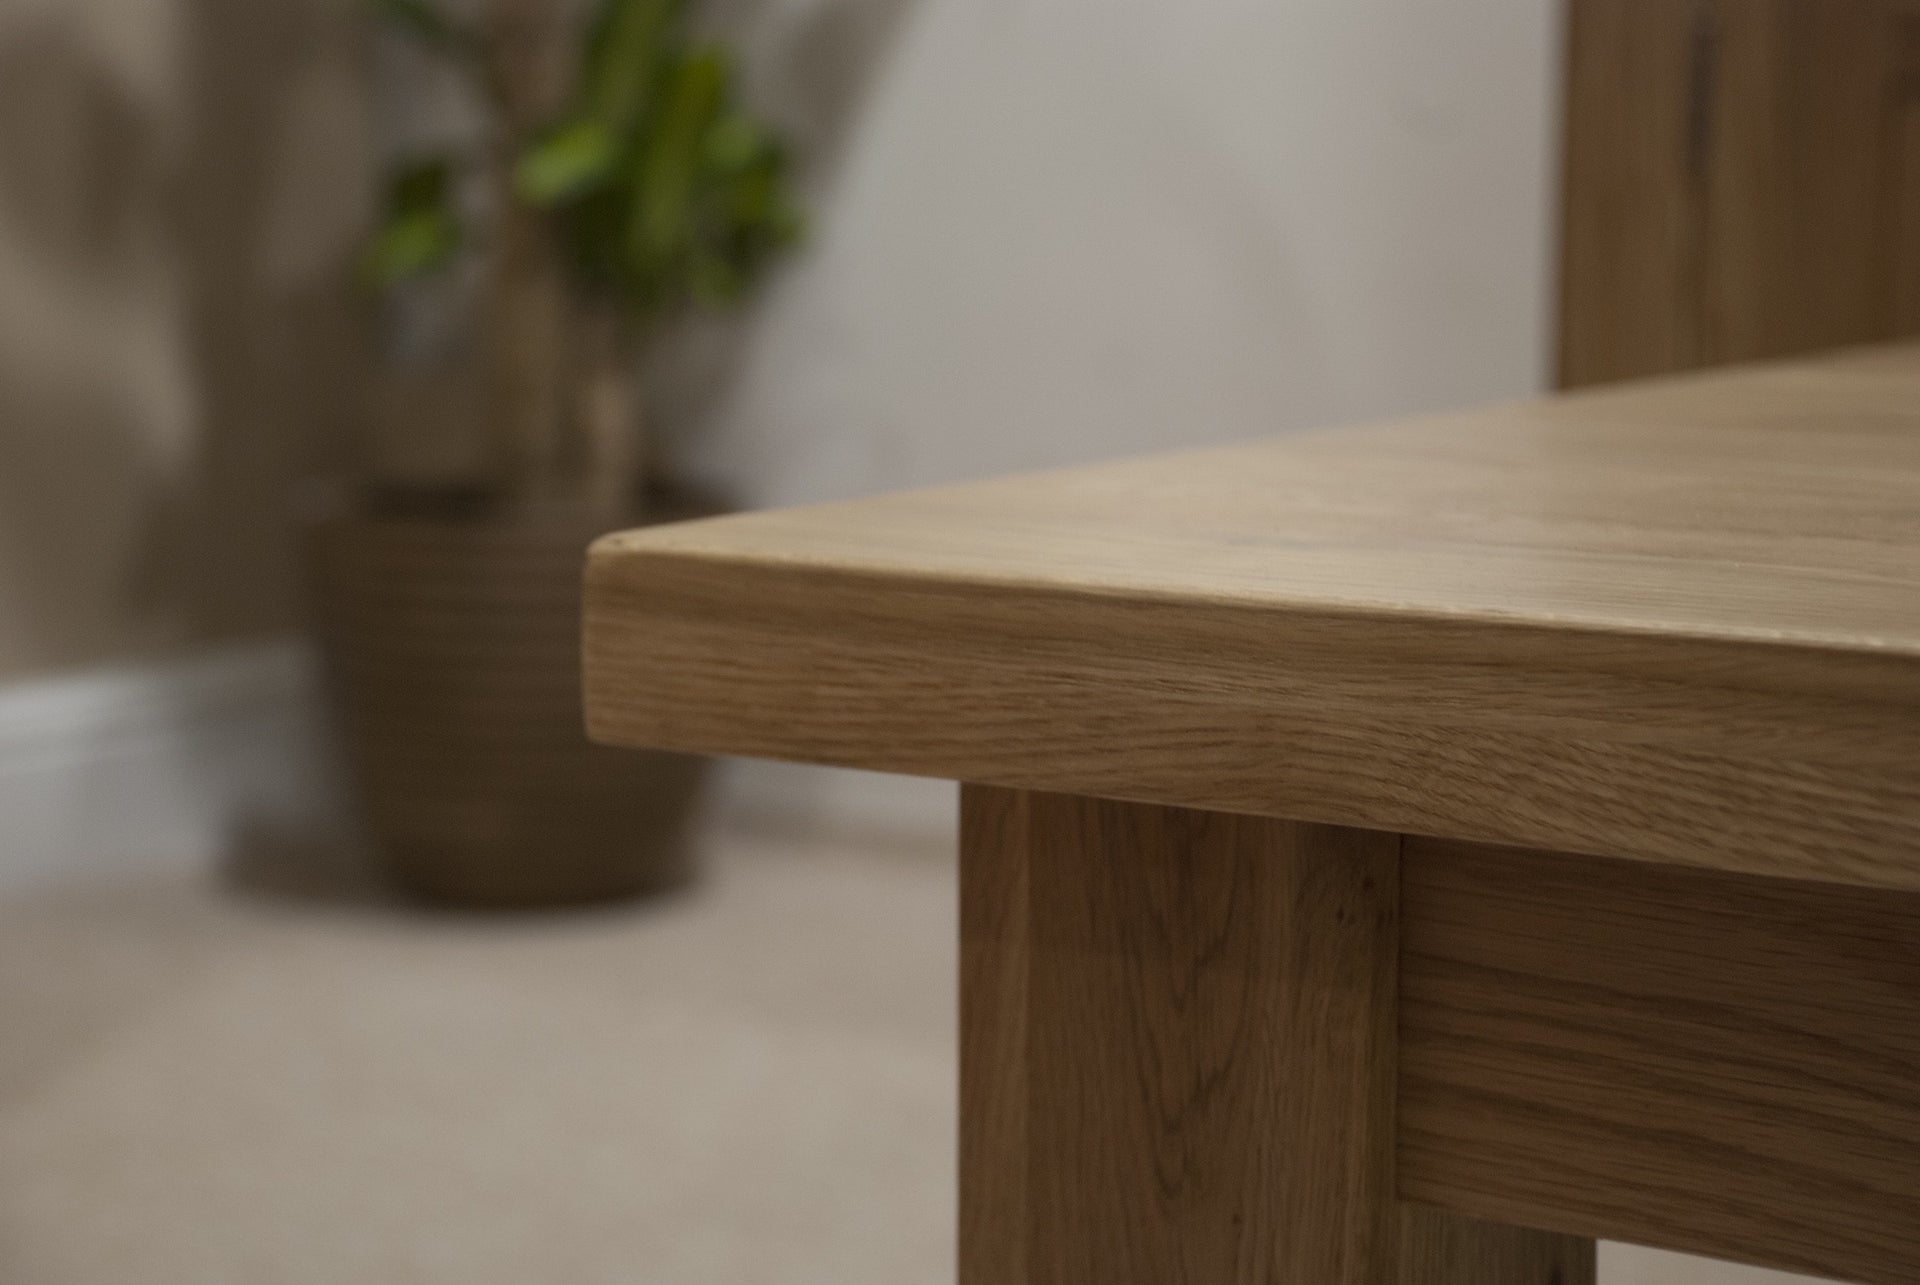 European Solid Oak 'A' Grade Chunky 32mm and 40mm Thickness Table Tops Full Wide Strips/Staves 90mm-110mm